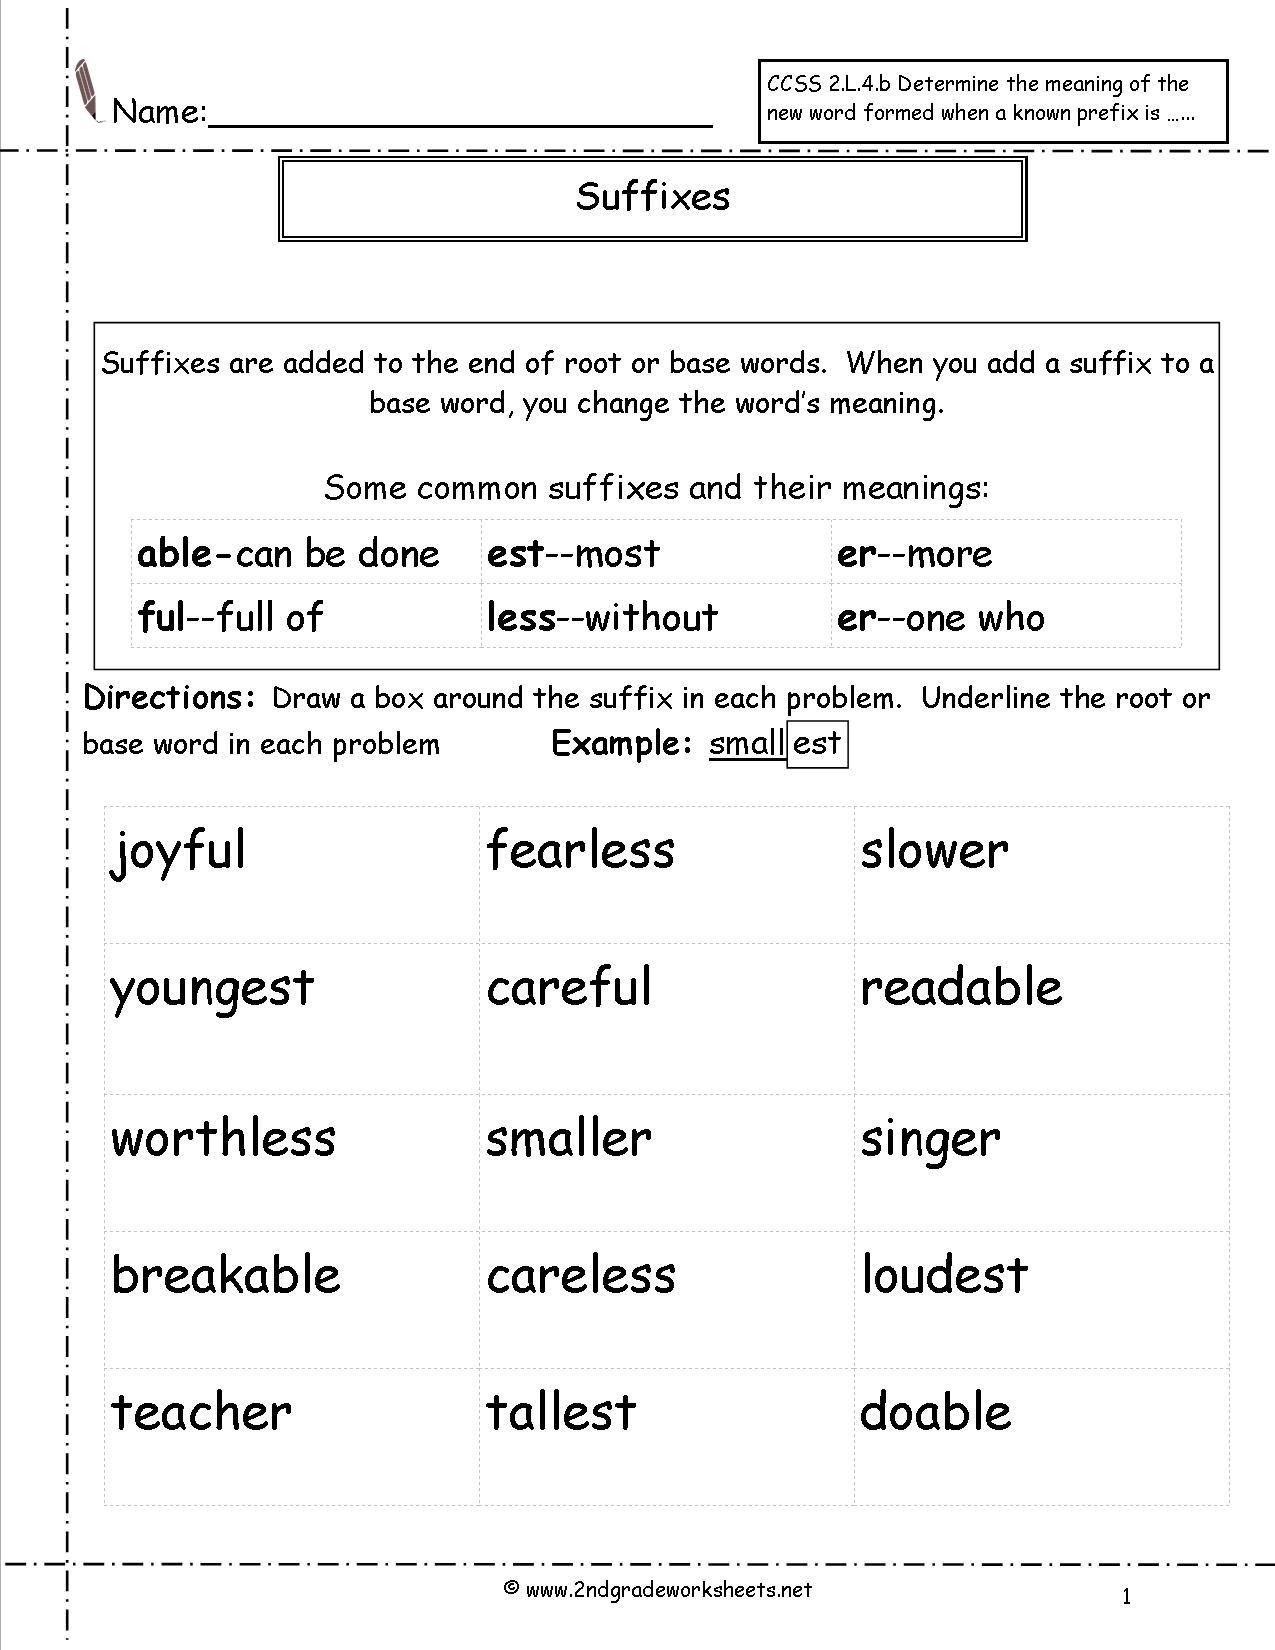 Suffixes Worksheets Pdf 41 Innovative Prefix Worksheets for You